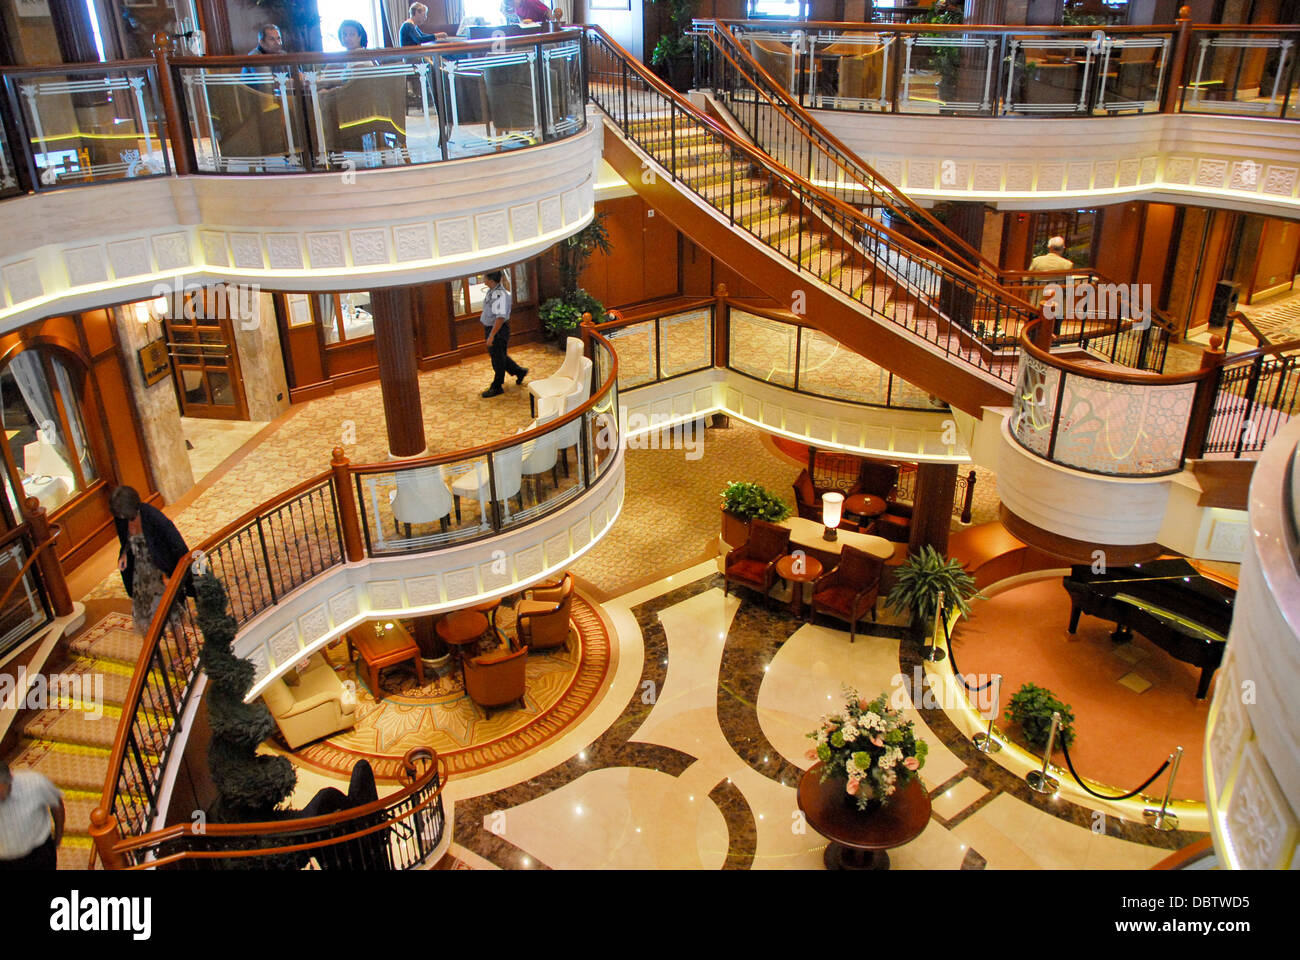 Interior Of The Cunard Line Queen Elizabeth Ship Stock Photo Royalty Free Image 58939137 Alamy